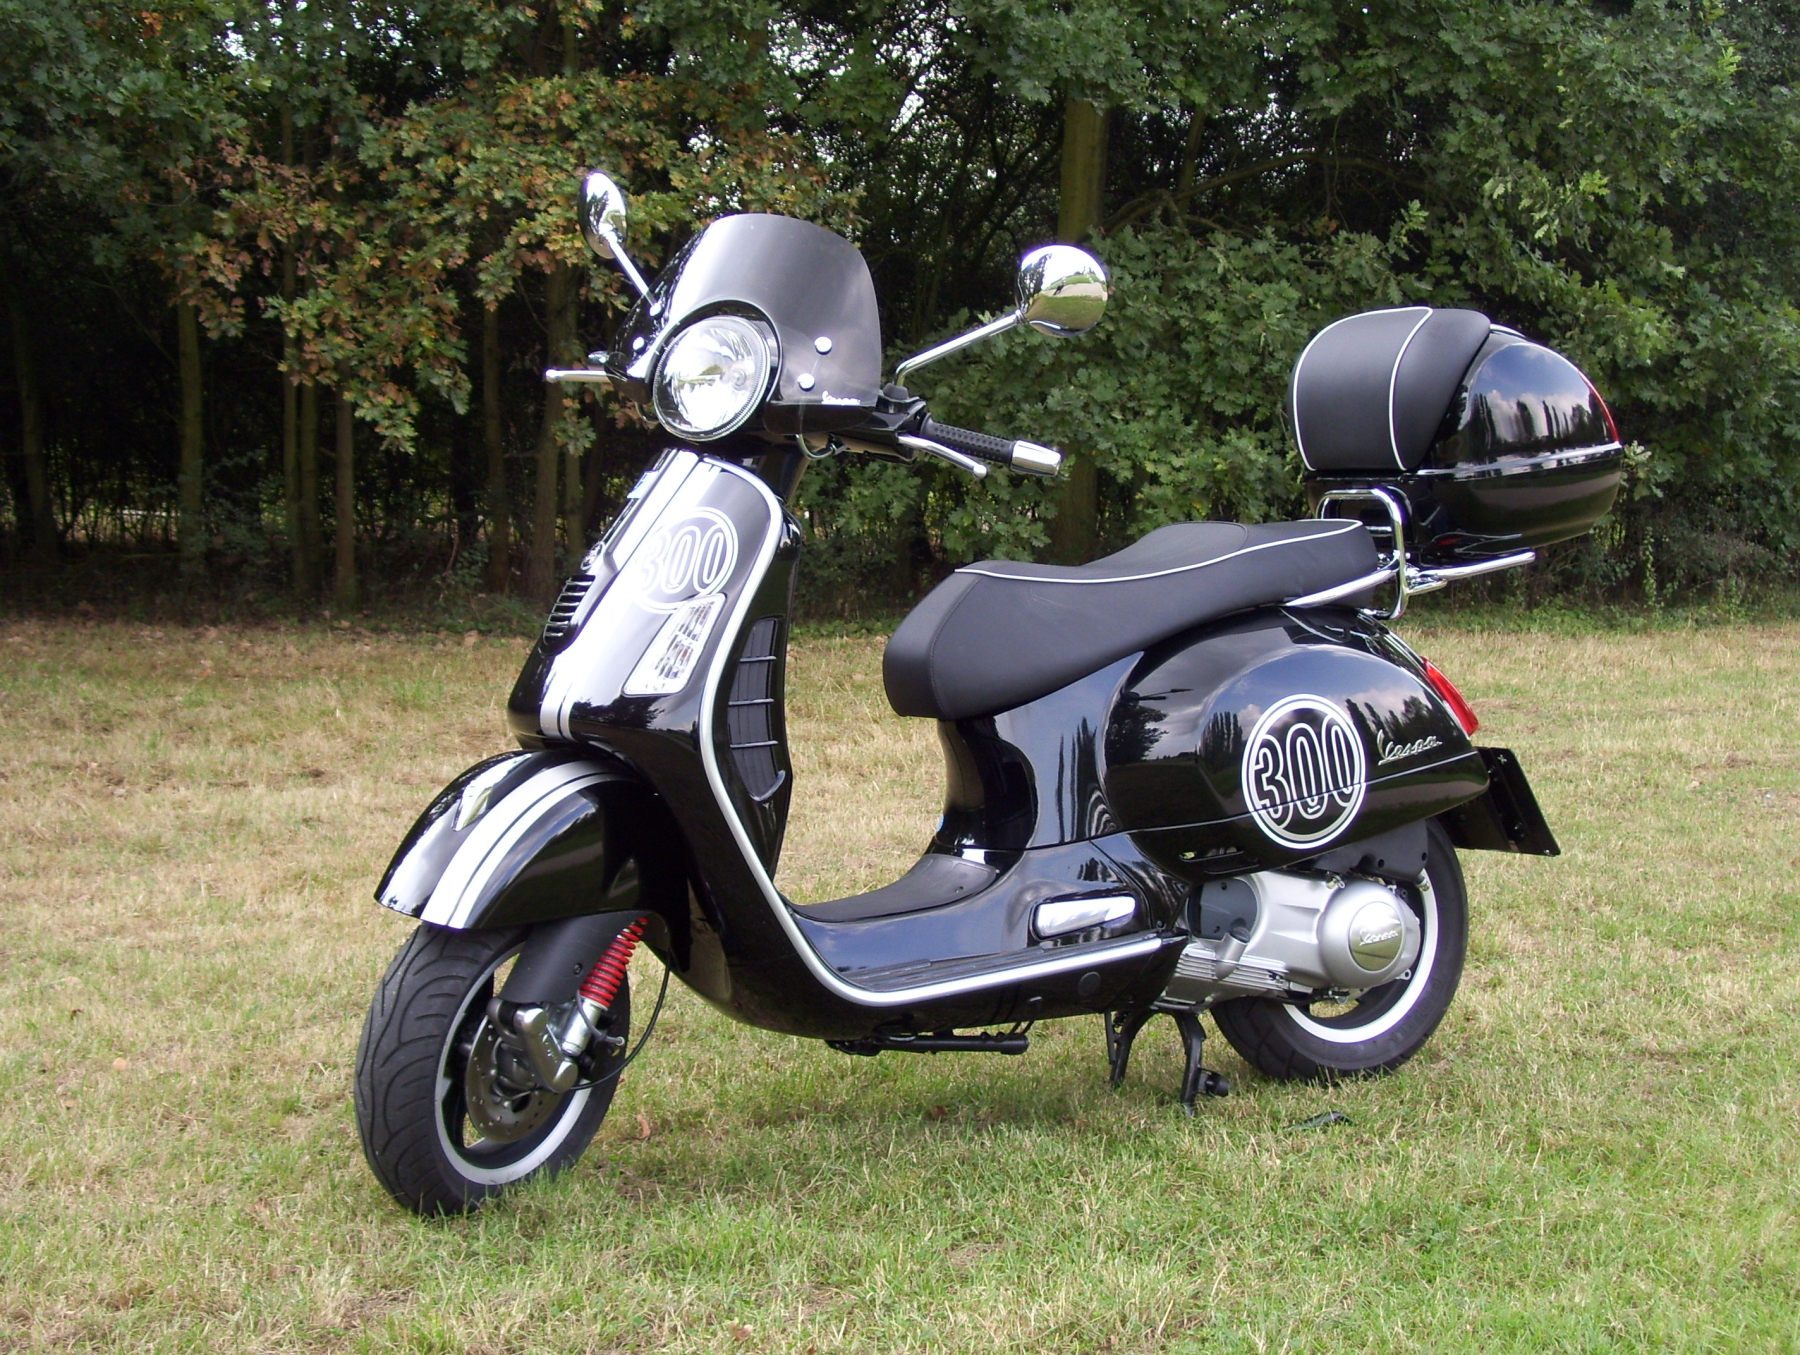 Filevespa Gts 300 Super 3jpg Wikimedia Commons